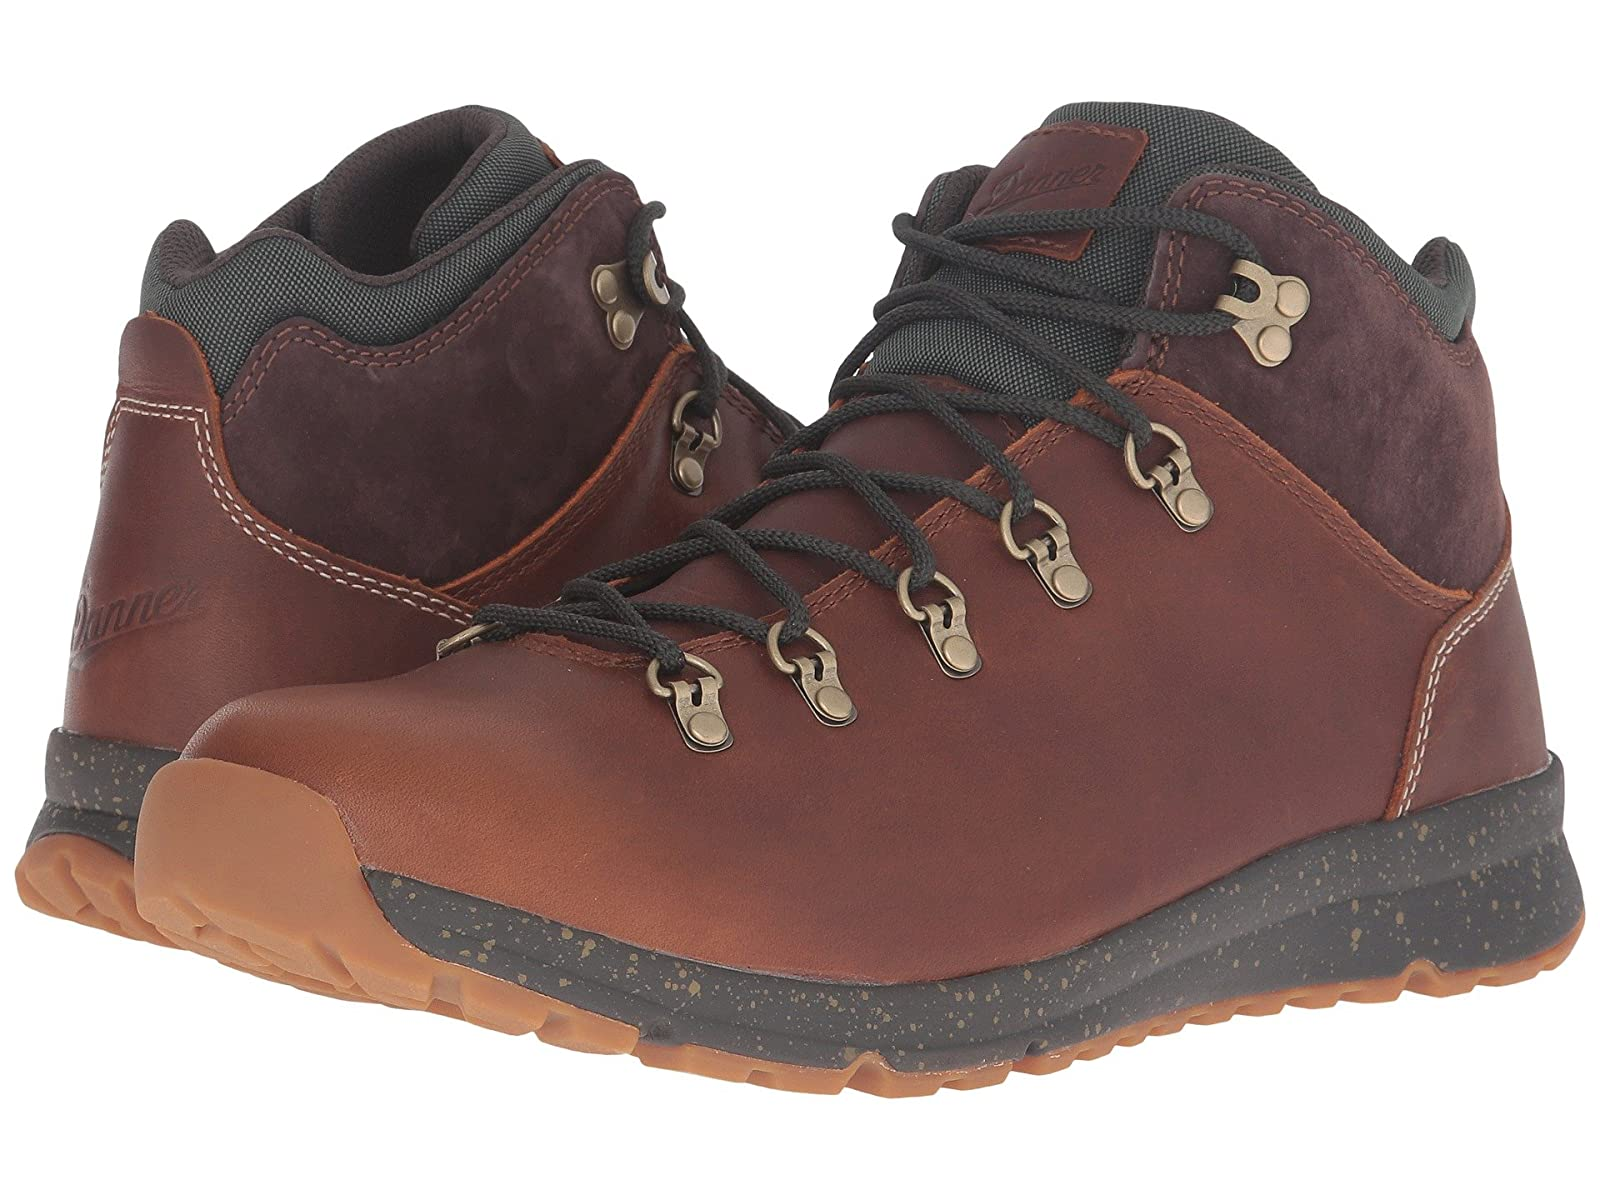 Danner Mountain 503Affordable and distinctive shoes